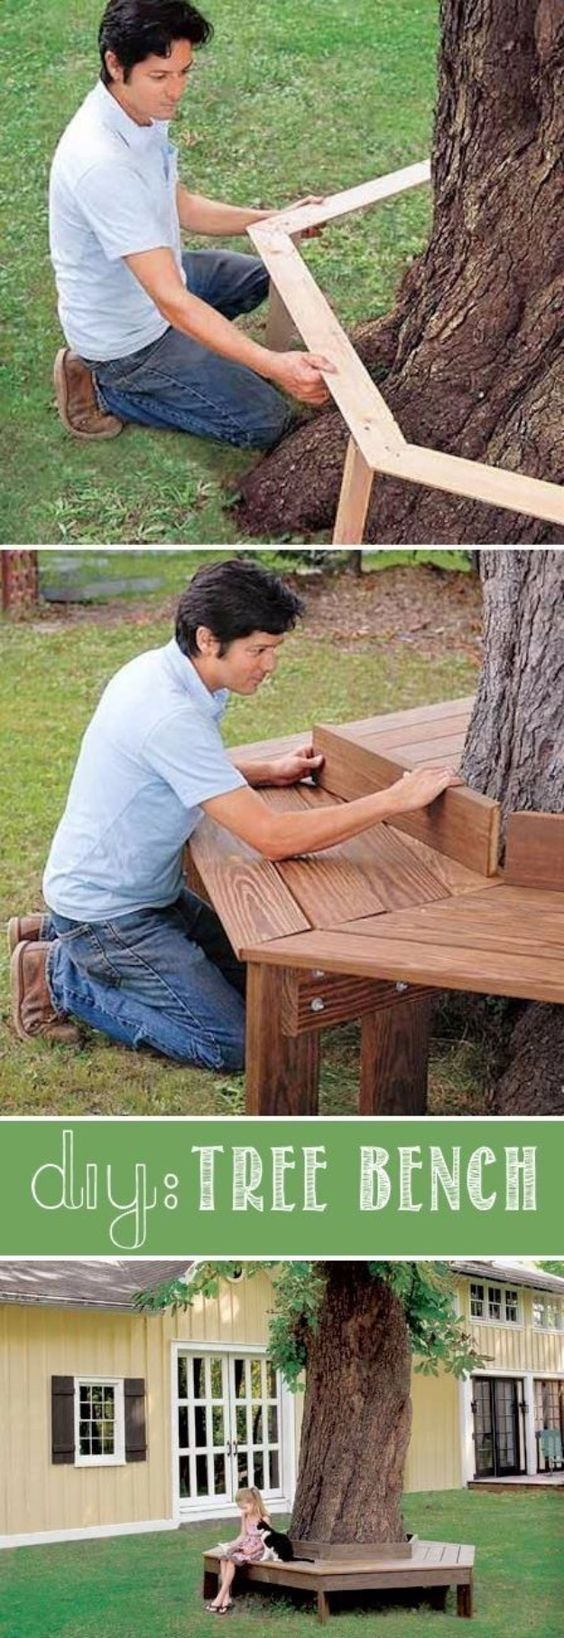 42 diy ideas to increase curb appeal tree bench box - Diy front yard landscaping ideas on a budget ...